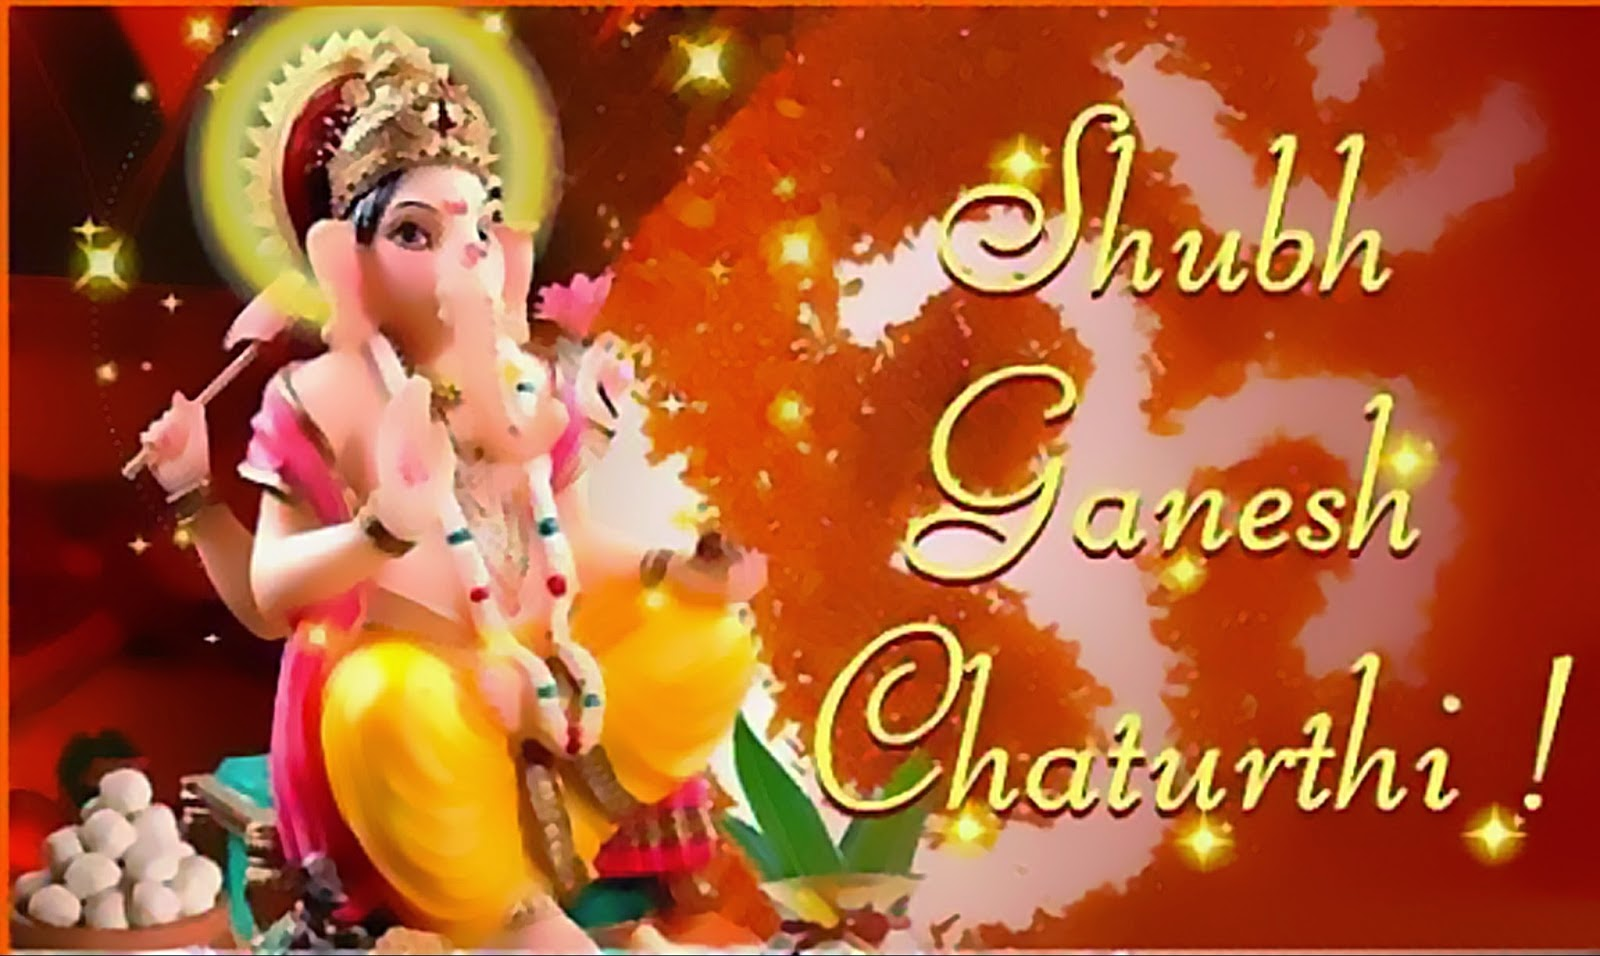 Ganesh Chaturthi Images Whatsapp Facebook DP